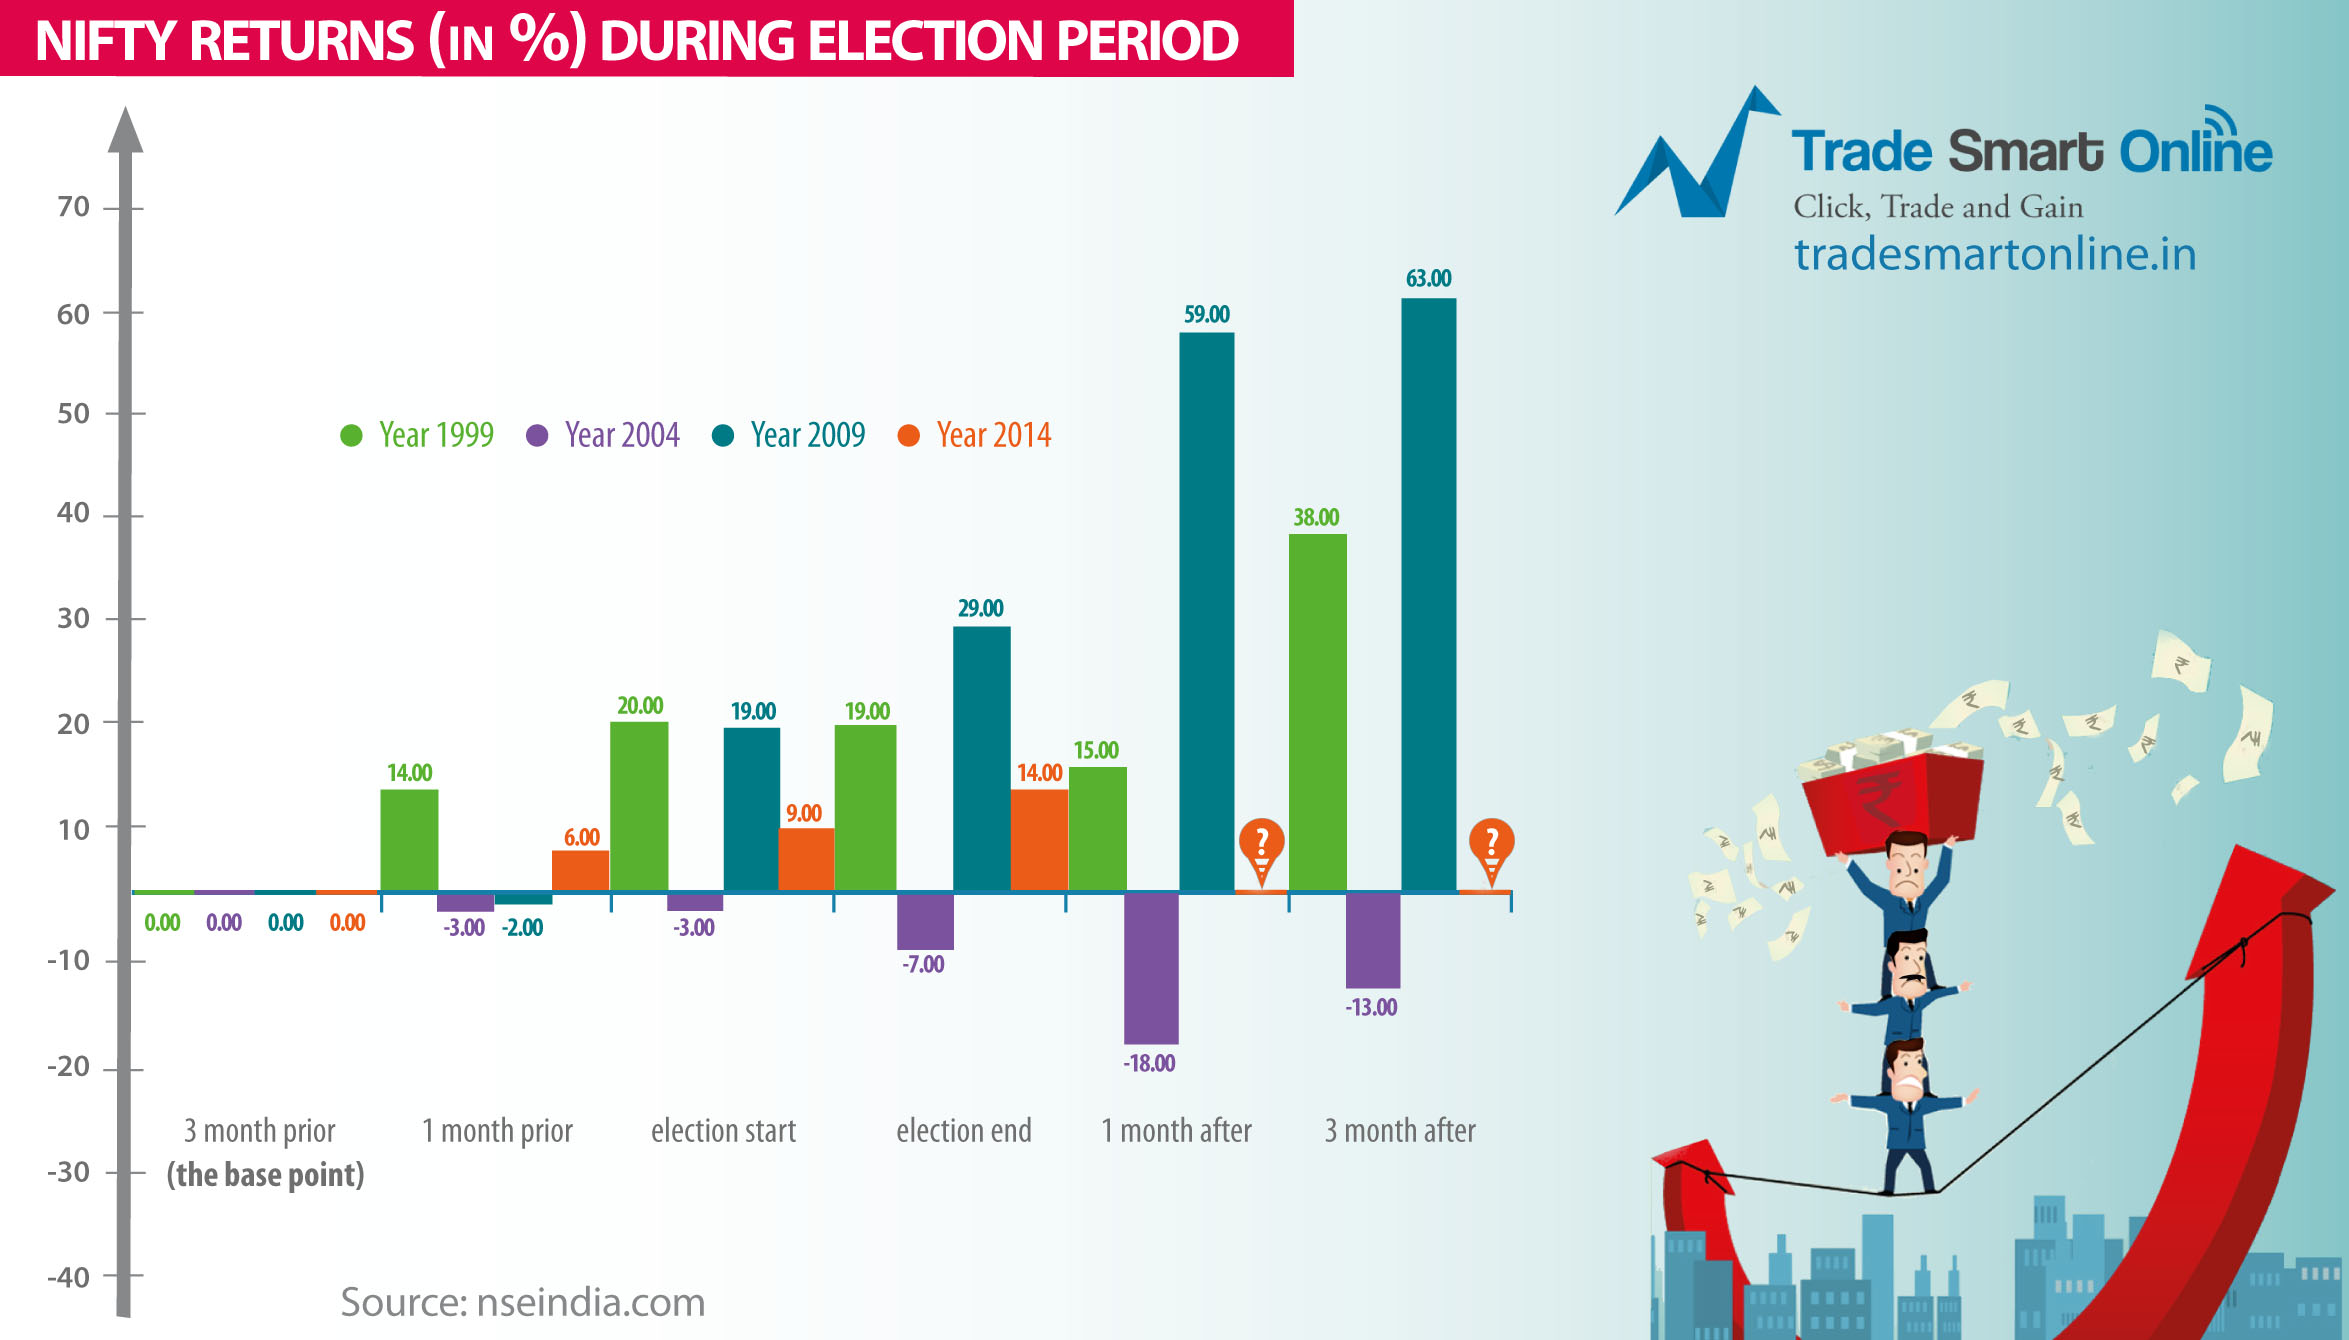 niftyreturns - Nifty Returns During General Elections